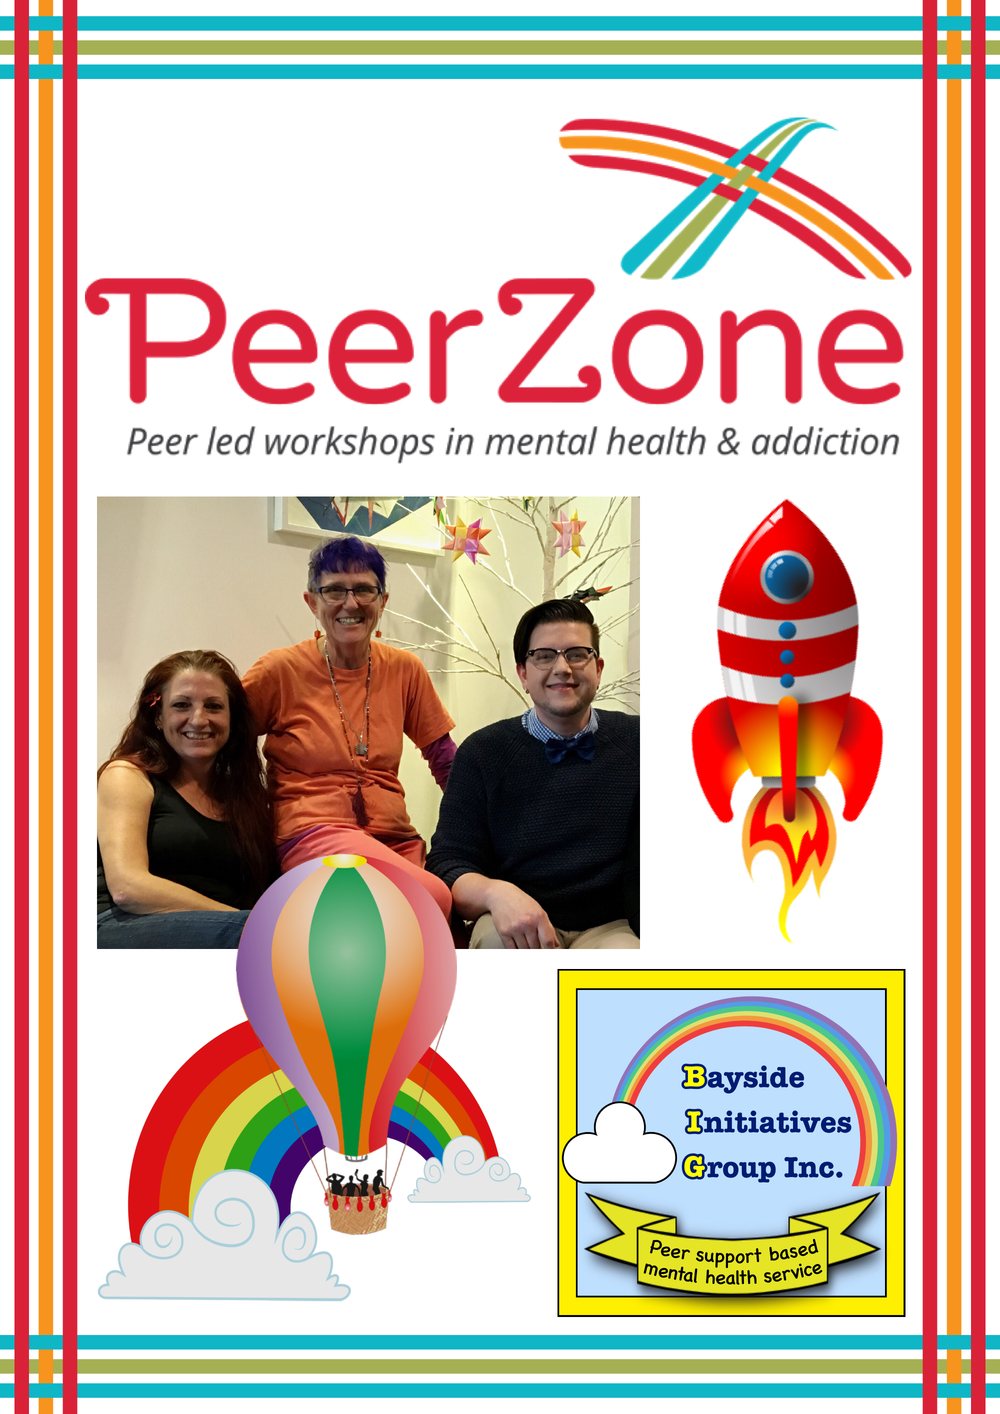 Peer Zone at BIG - Peer-led workshops in mental health at Bayside Initiatives Group Inc. a unique peer support based mental health service catering to consumers in the Redlands and Bayside areas.